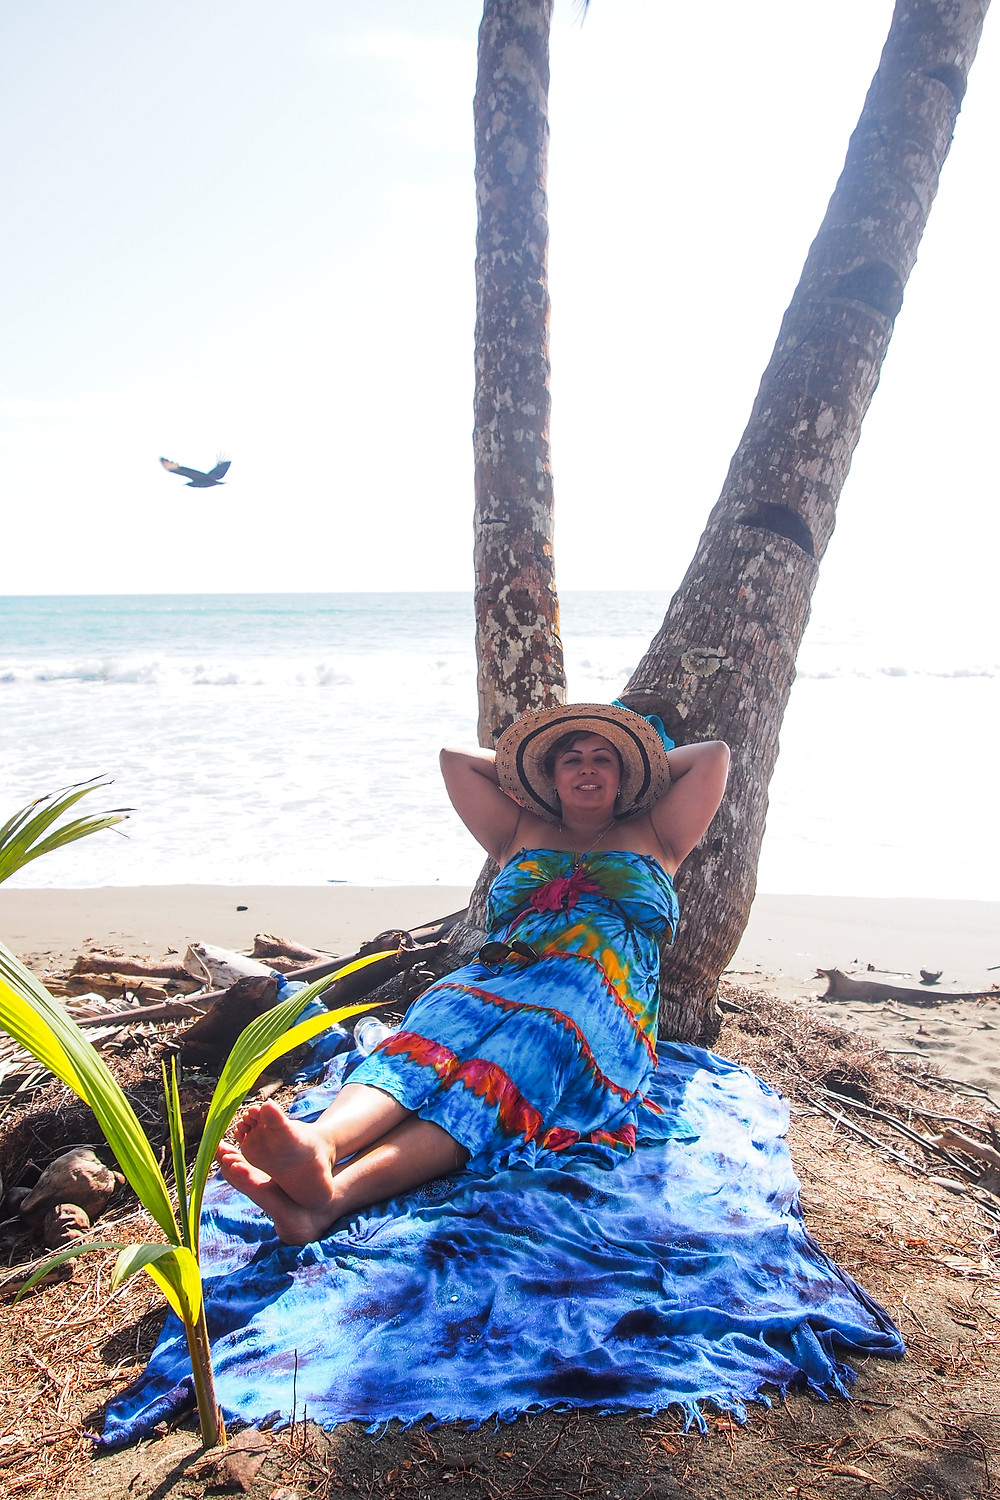 Devina Kaur on the beach sitting under a palm tree wearing a blue striped dress